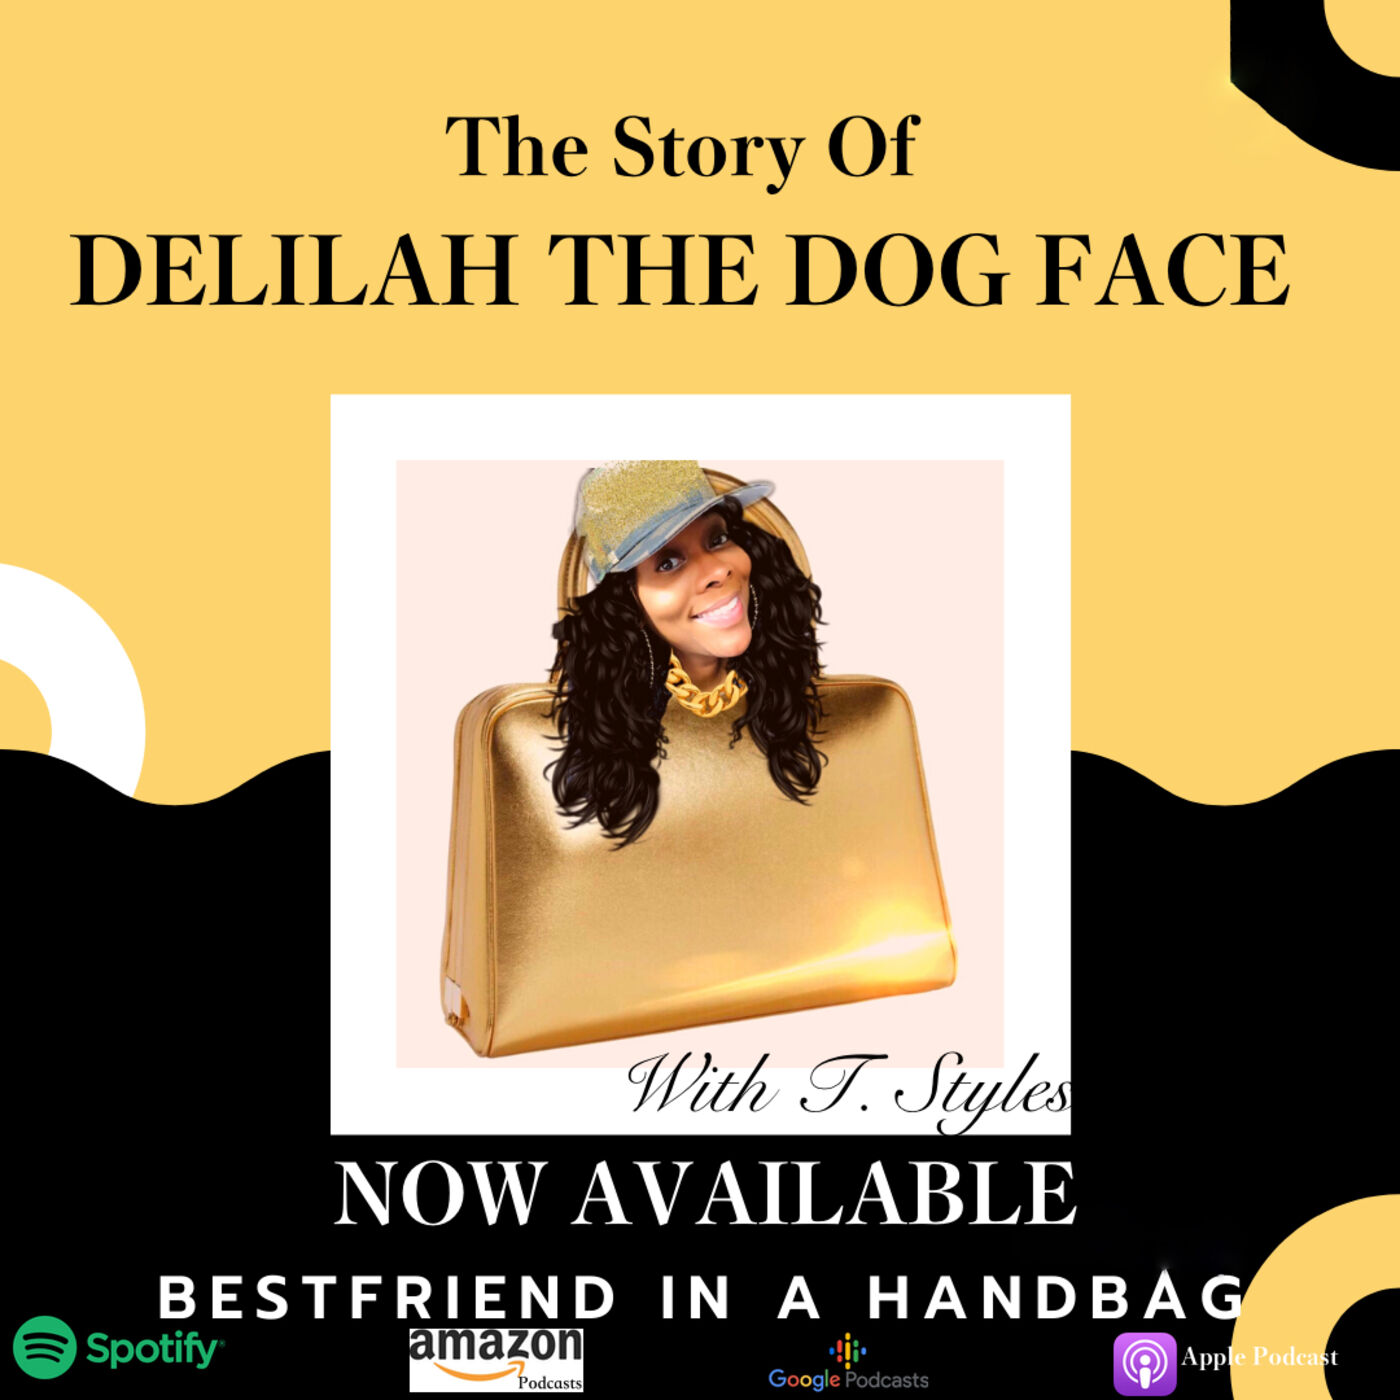 The Story Of Delilah The Dogface